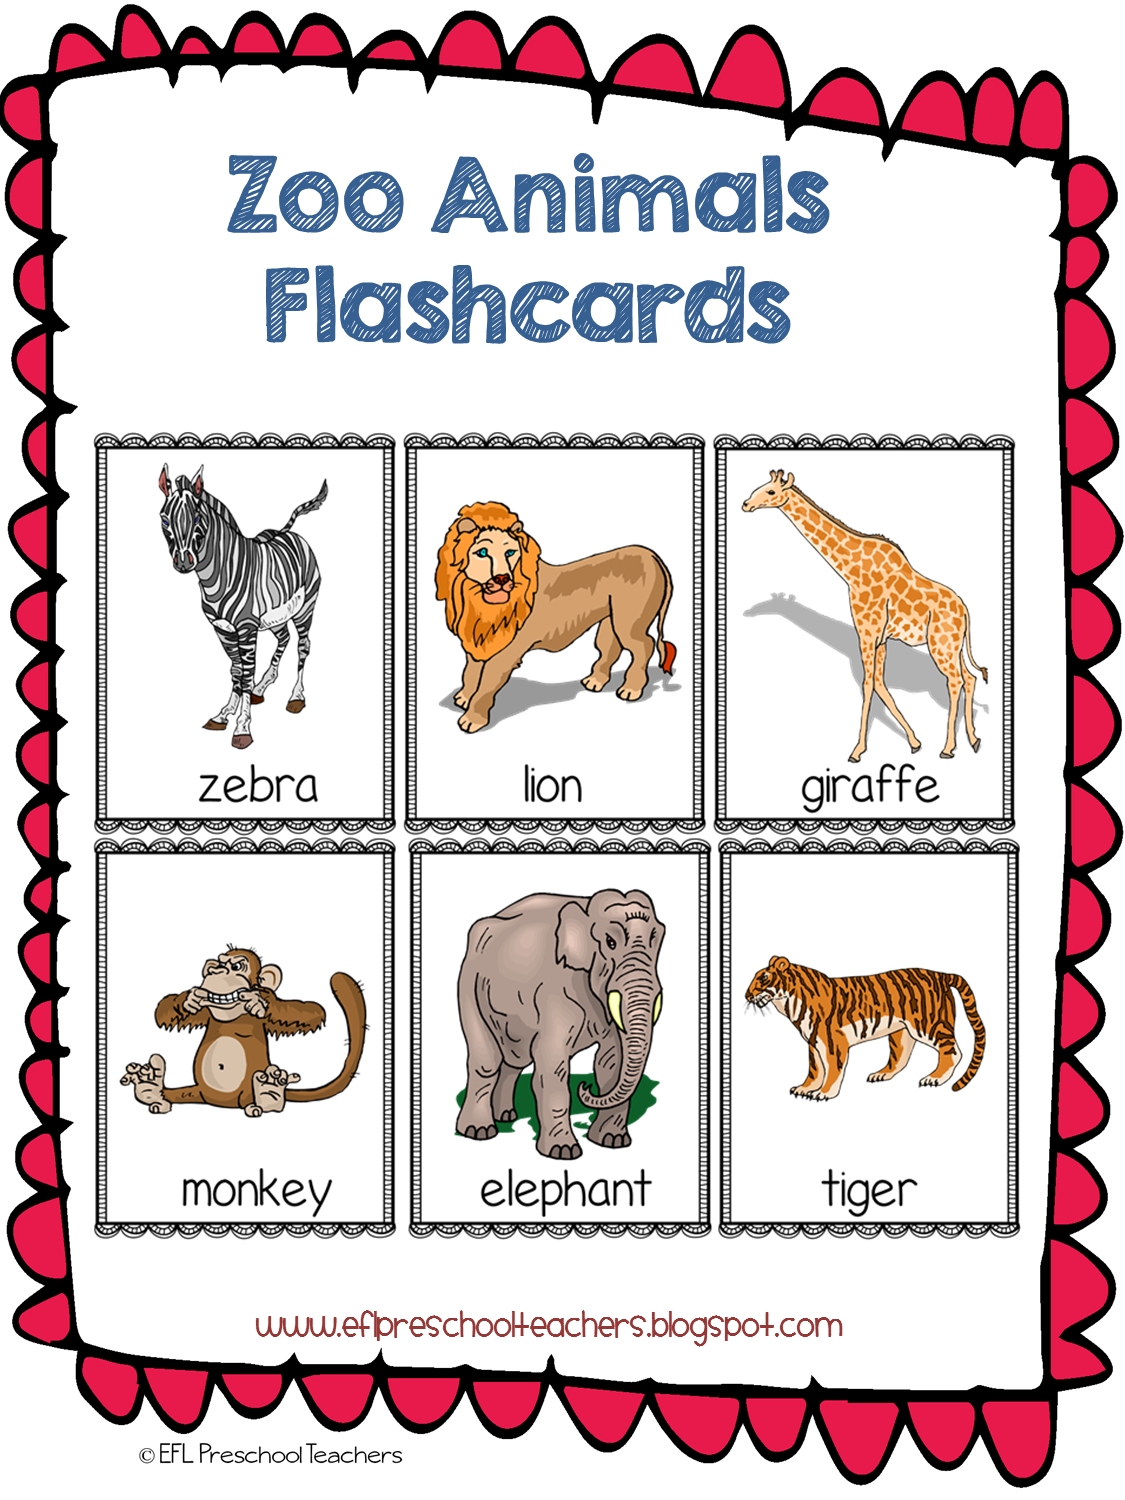 Esl Efl Preschool Teachers Zoo Animal Theme For The